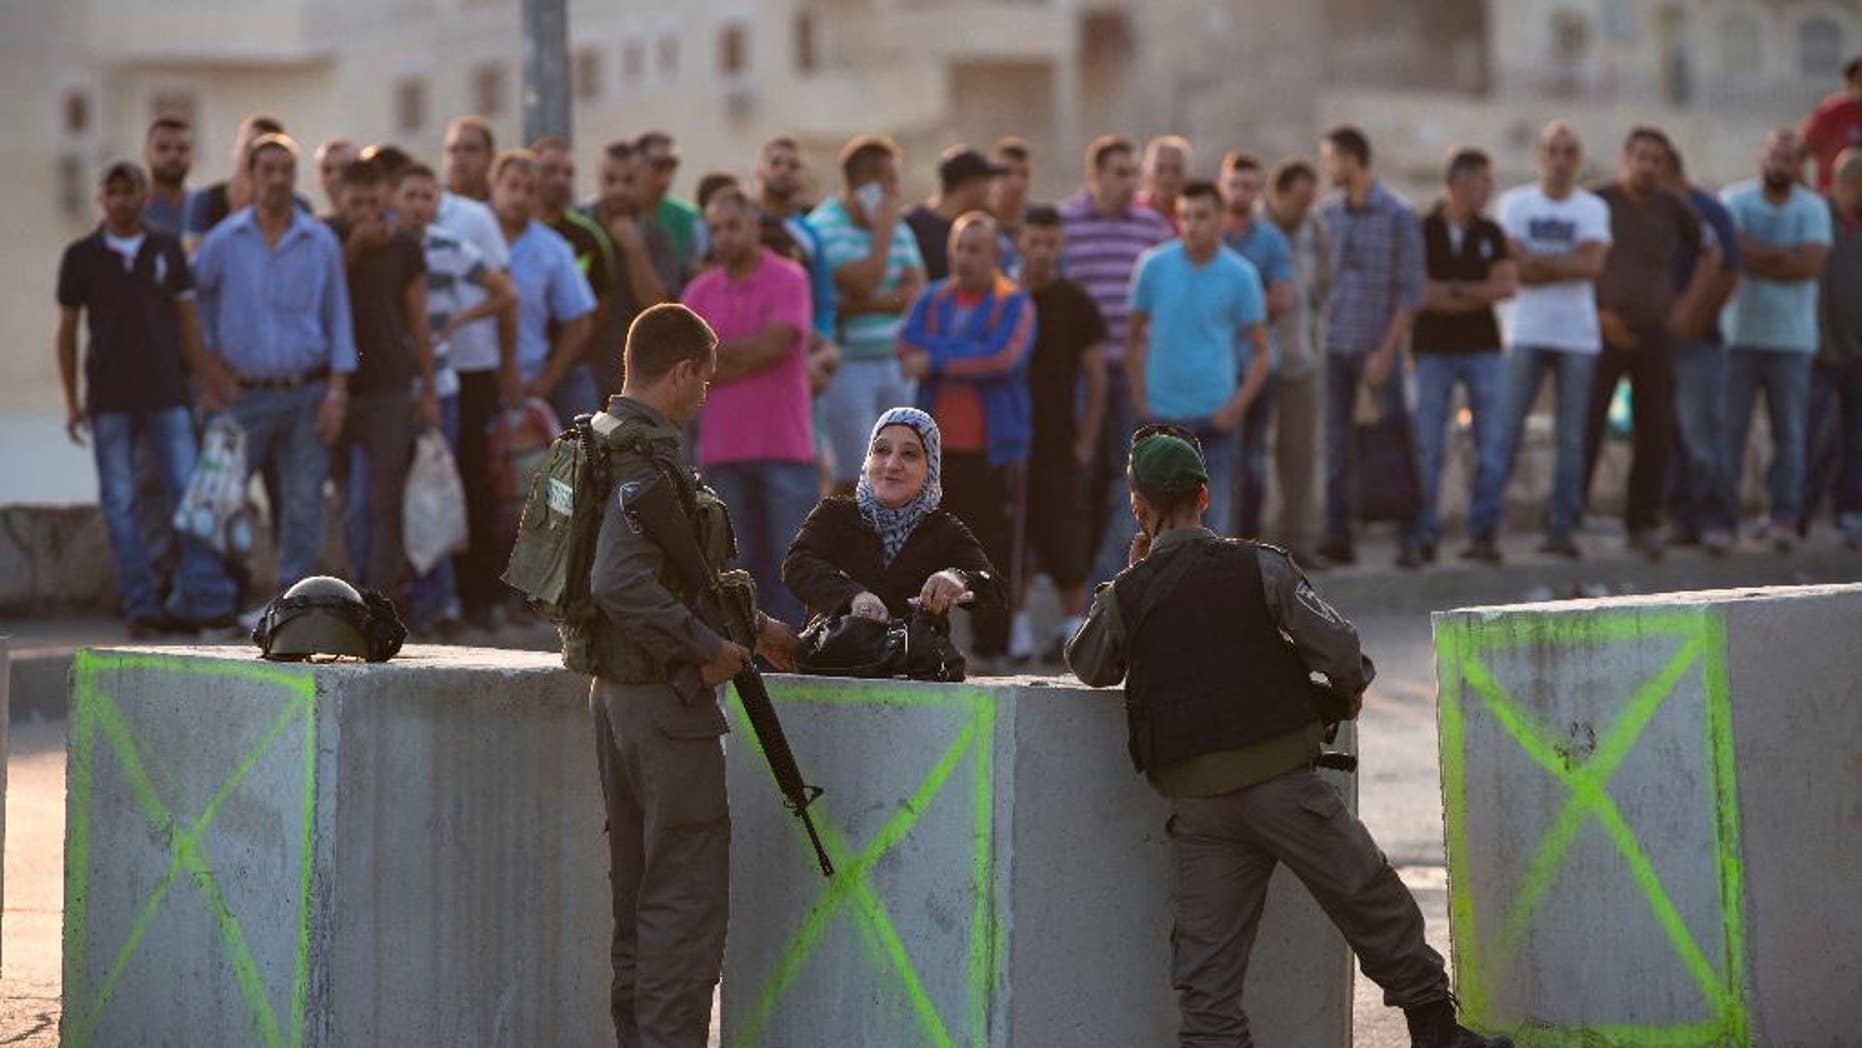 Israeli border police check Palestinian's IDs at a checkpoint as they exit the Arab neighborhood of Issawiyeh in Jerusalem, Sunday, Oct. 18, 2015. Palestinian assailants carried out a series of five stabbing attacks in Jerusalem and the West Bank on Saturday, as a month-long outburst of violence showed no signs of abating. The unrest came despite new security measures that have placed troops and checkpoints around Palestinian neighborhoods in east Jerusalem. (AP Photo/Oded Balilty)